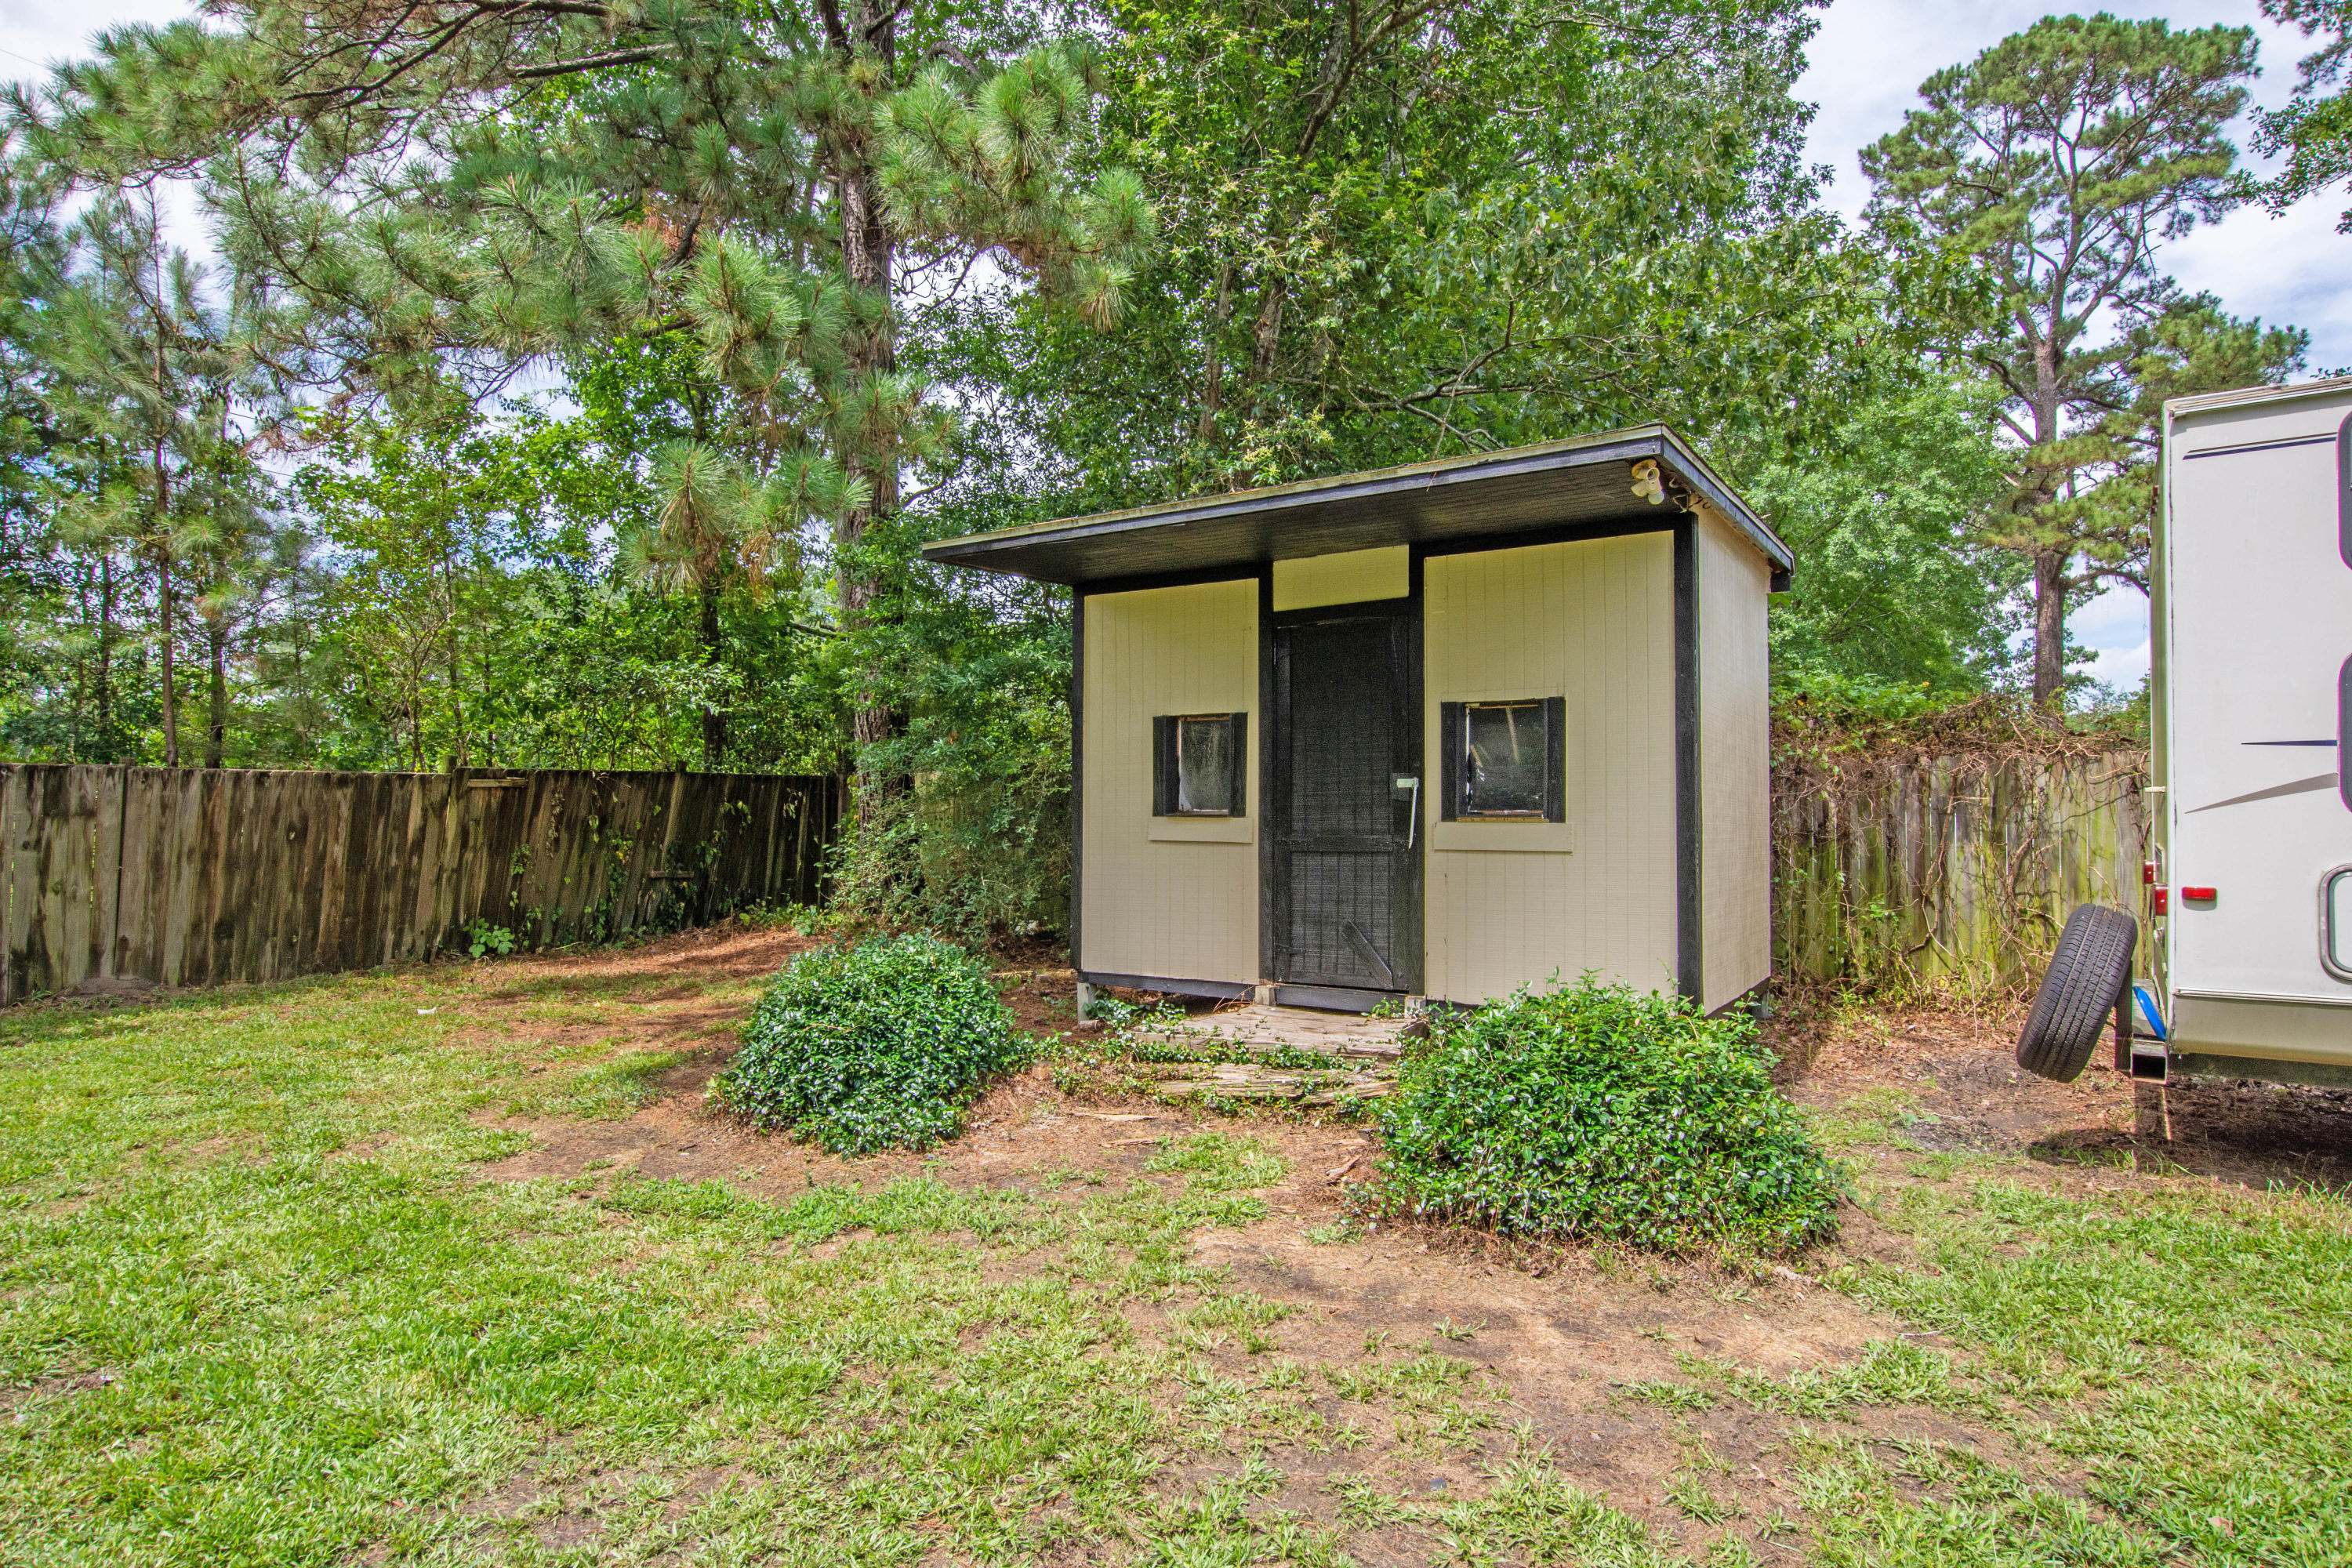 Pineview Terrace Homes For Sale - 232 Holly, Goose Creek, SC - 3